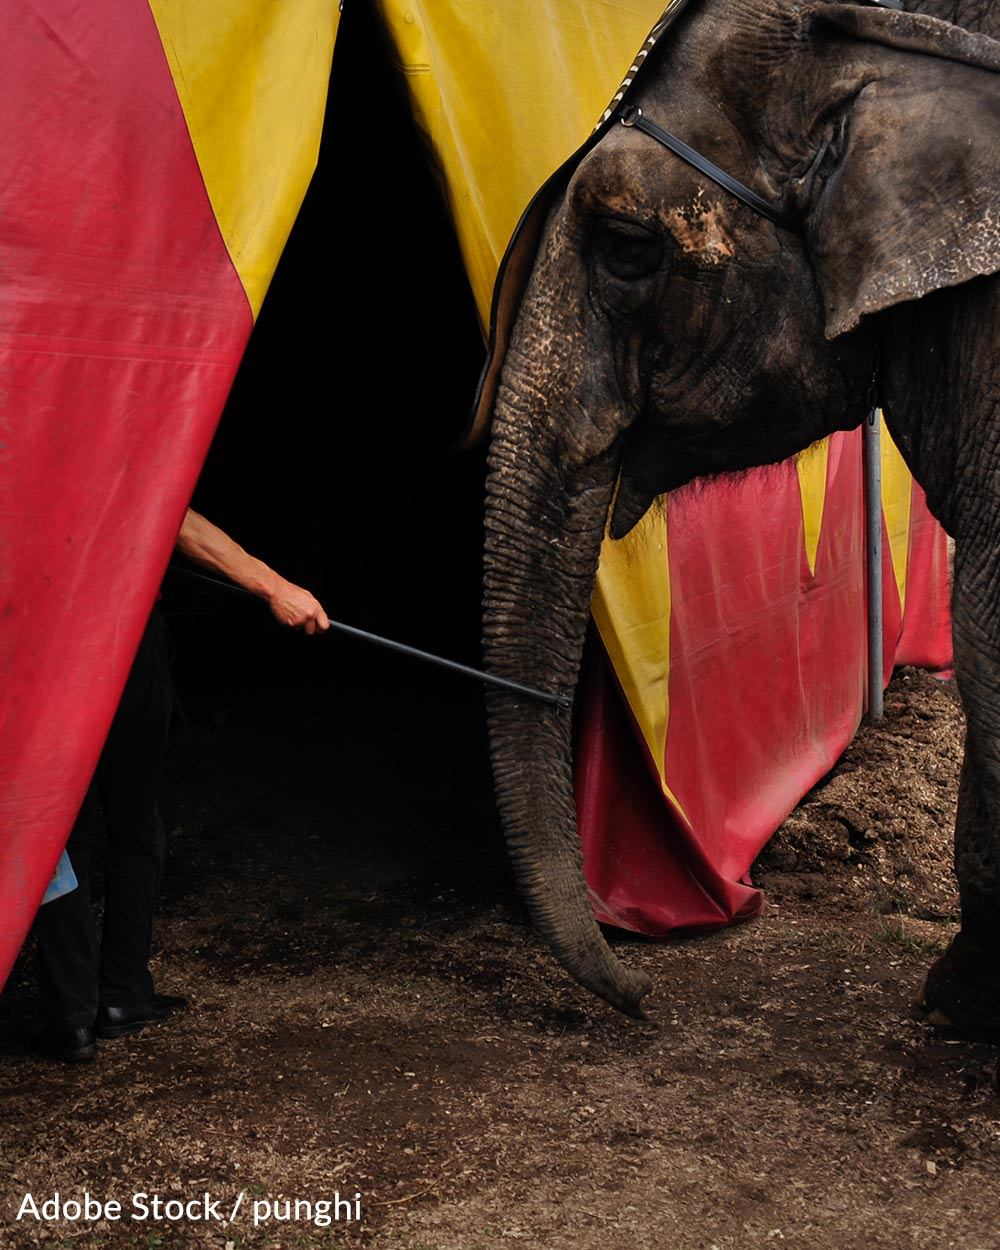 The Association of Zoos and Aquariums in 2019 voted to prohibit the use of bullhooks in elephant care and training.